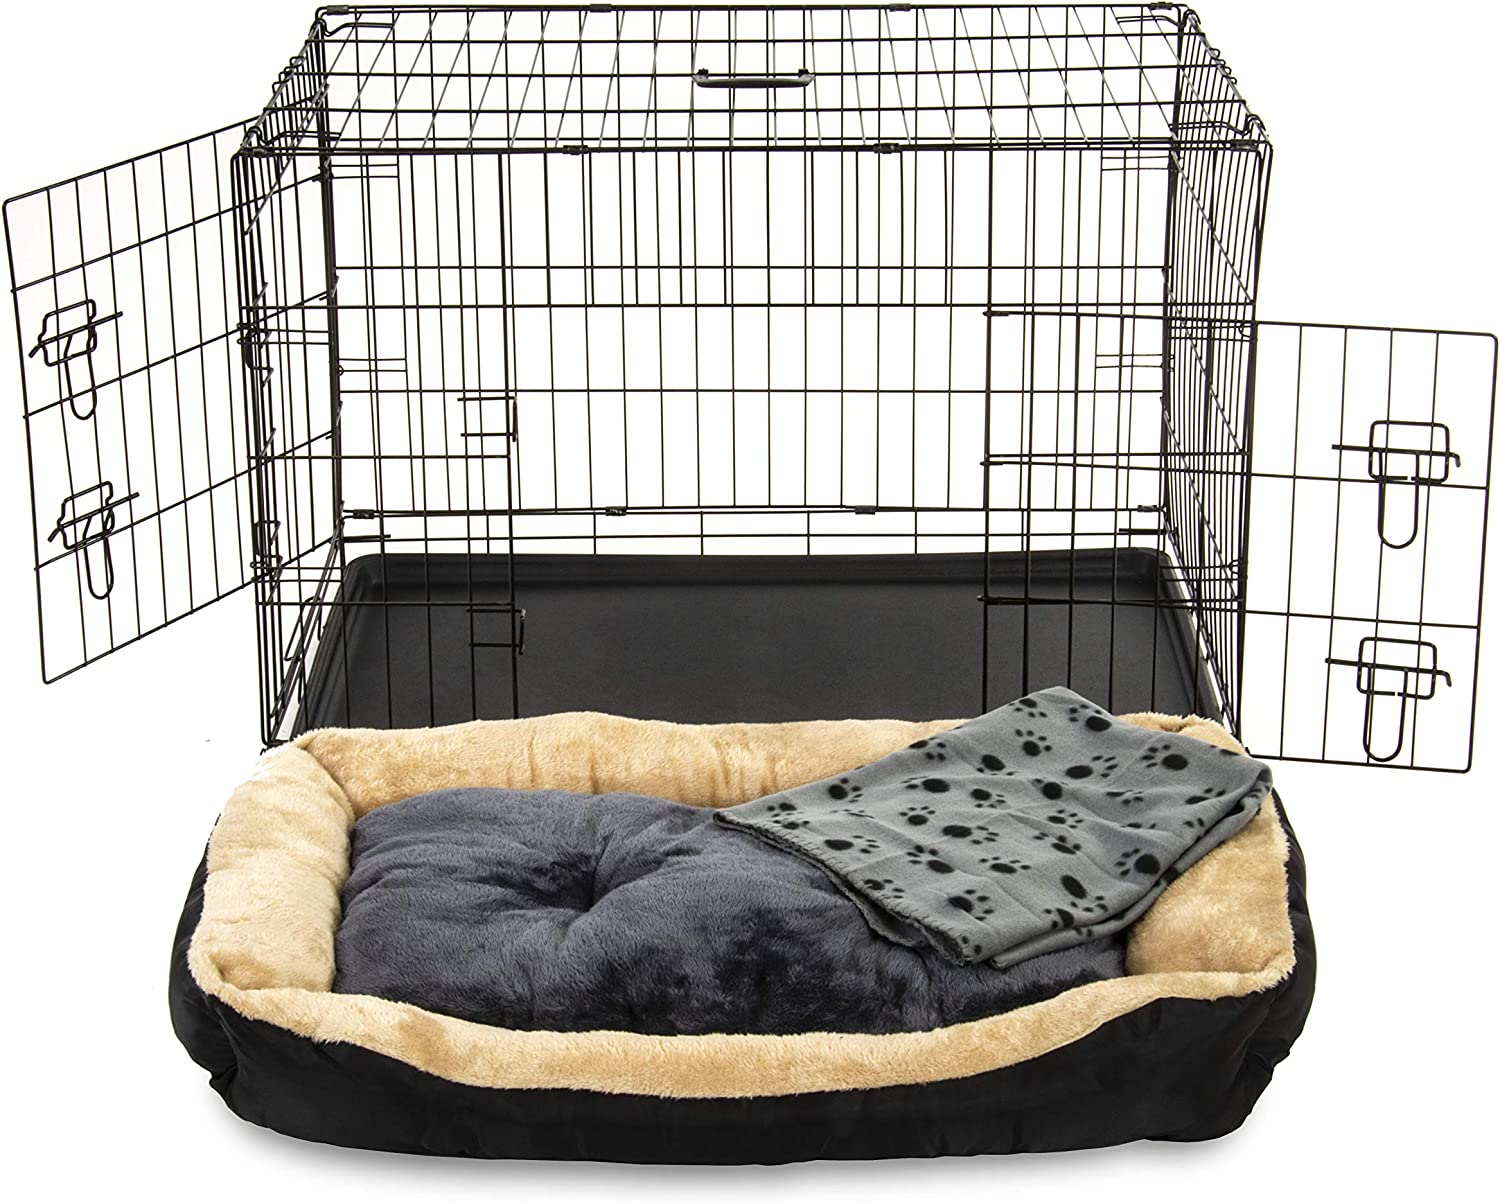 Alphapet/® Heavy Duty Pet Dog Cage INCLUDING FITTED FLEECE BED AND BLANKET Puppy Rabbit Animal Car Cage Crate Foldable Carrier Run Hutch Available in 5 Sizes 48 XX Large with Bed